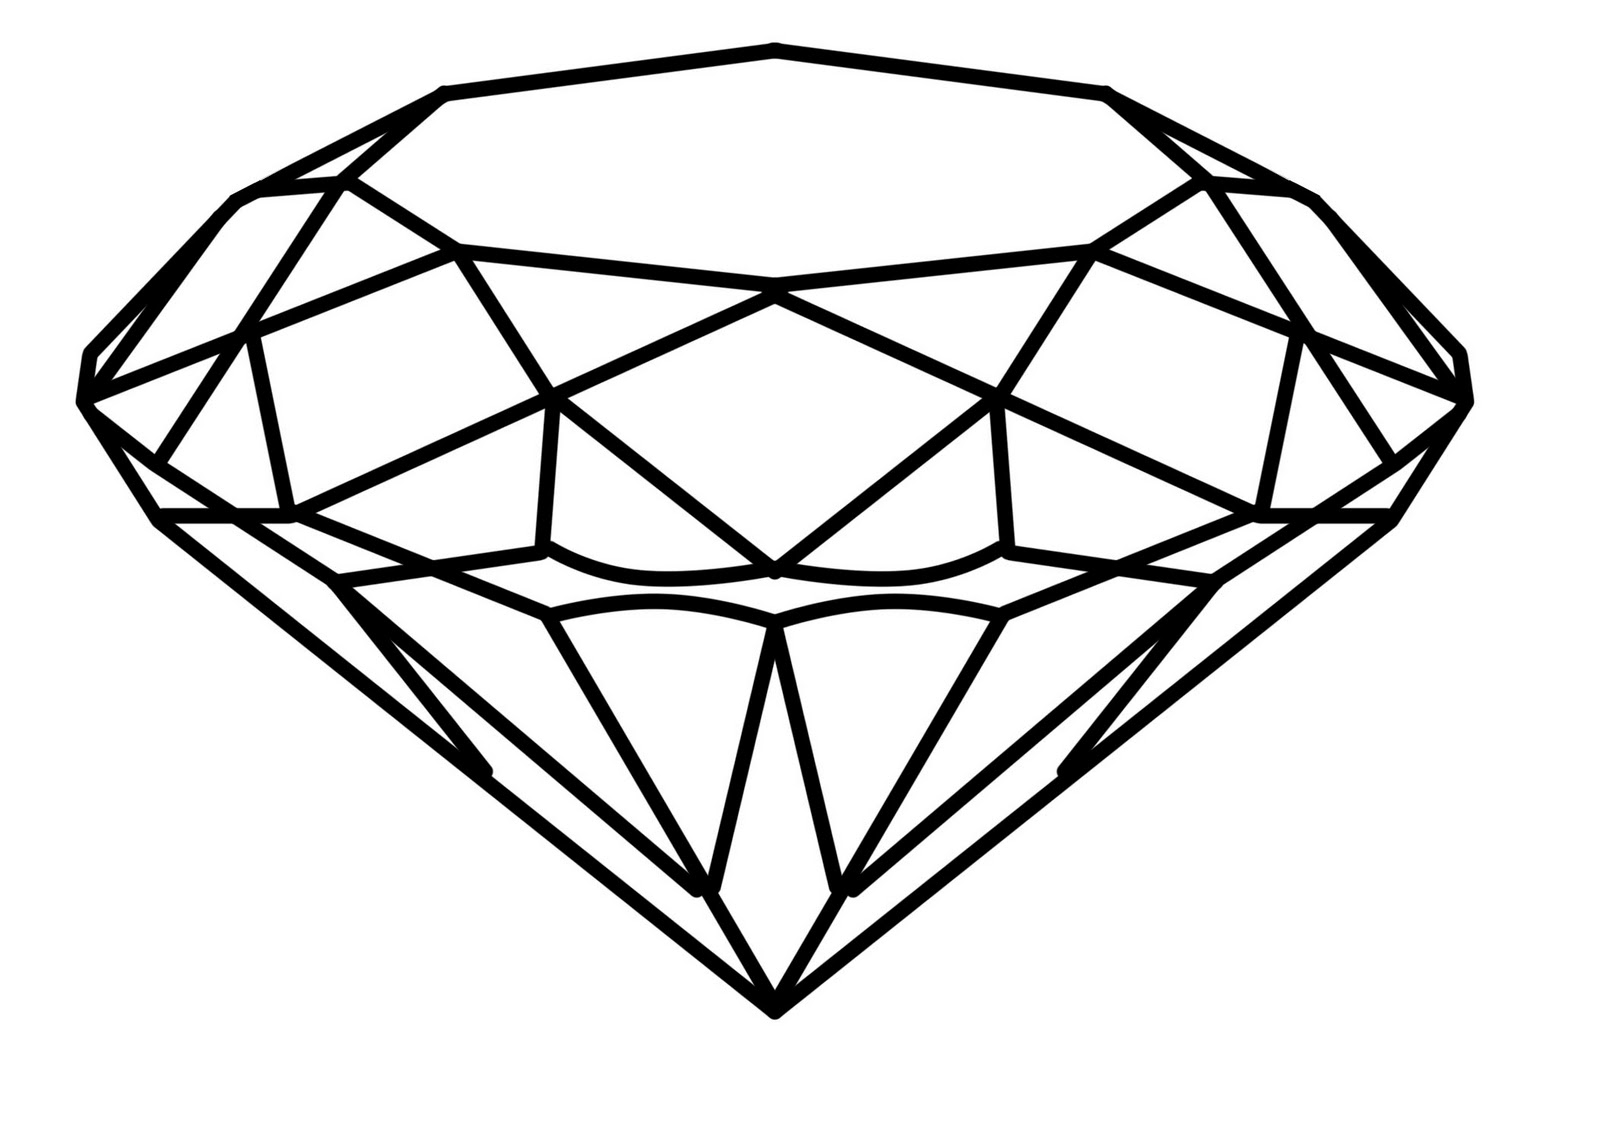 Free How To Draw A Diamond, Download Free Clip Art, Free.